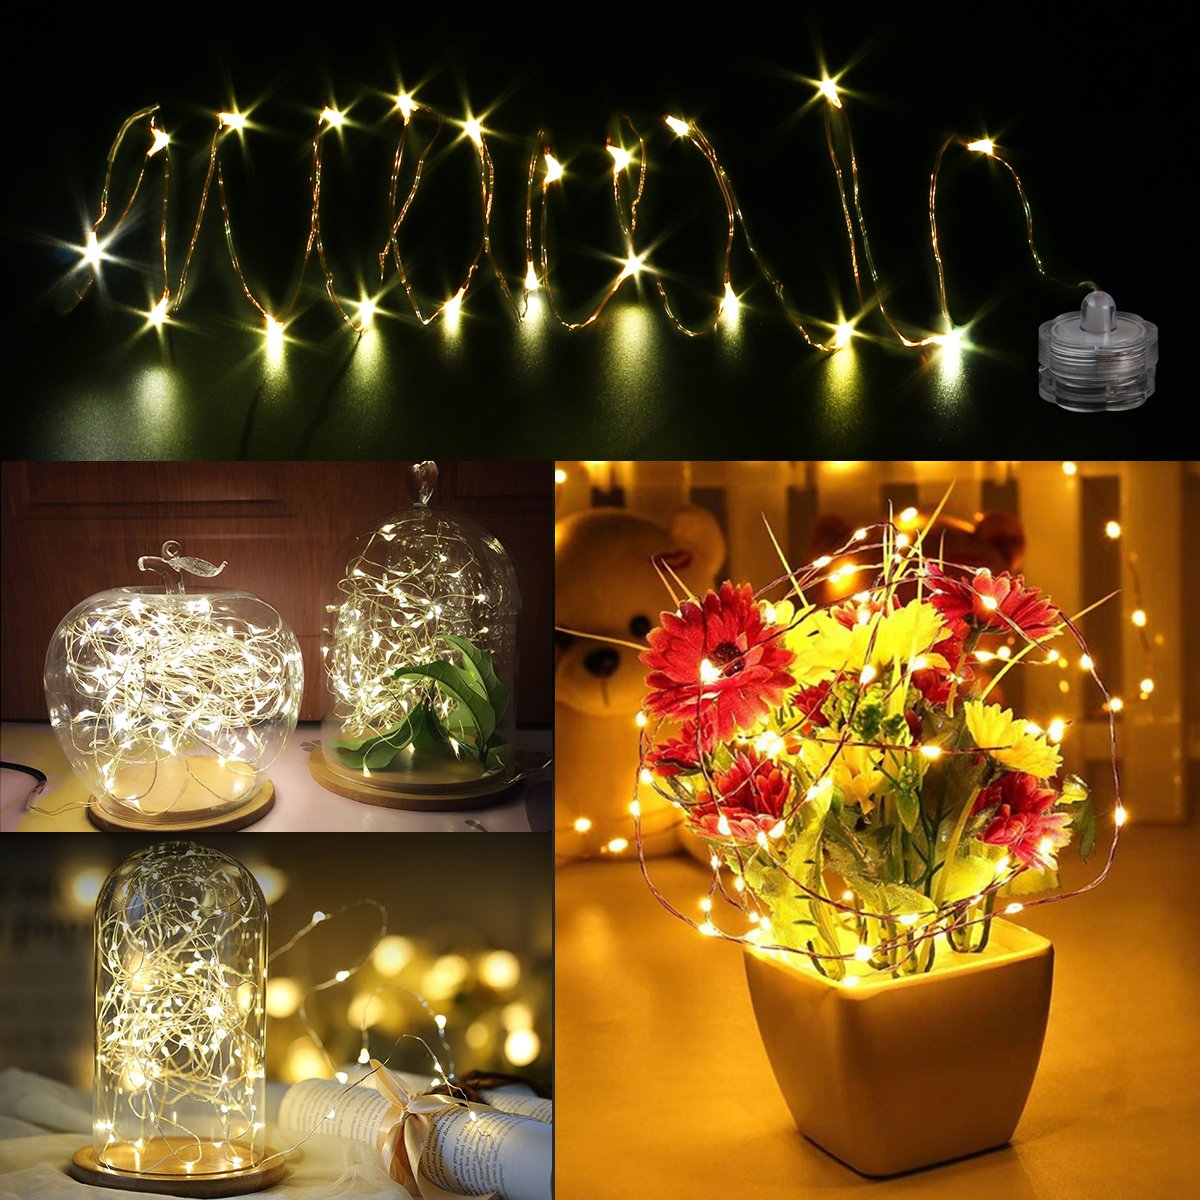 LED Starry String Lights, 8PCS 6.5foot Warm White Copper Fairy Lights with 20 Micro LEDs, Waterproof, Battery Operated, for Wedding Parties Table Decoration by YUNLIGHTS (Image #6)